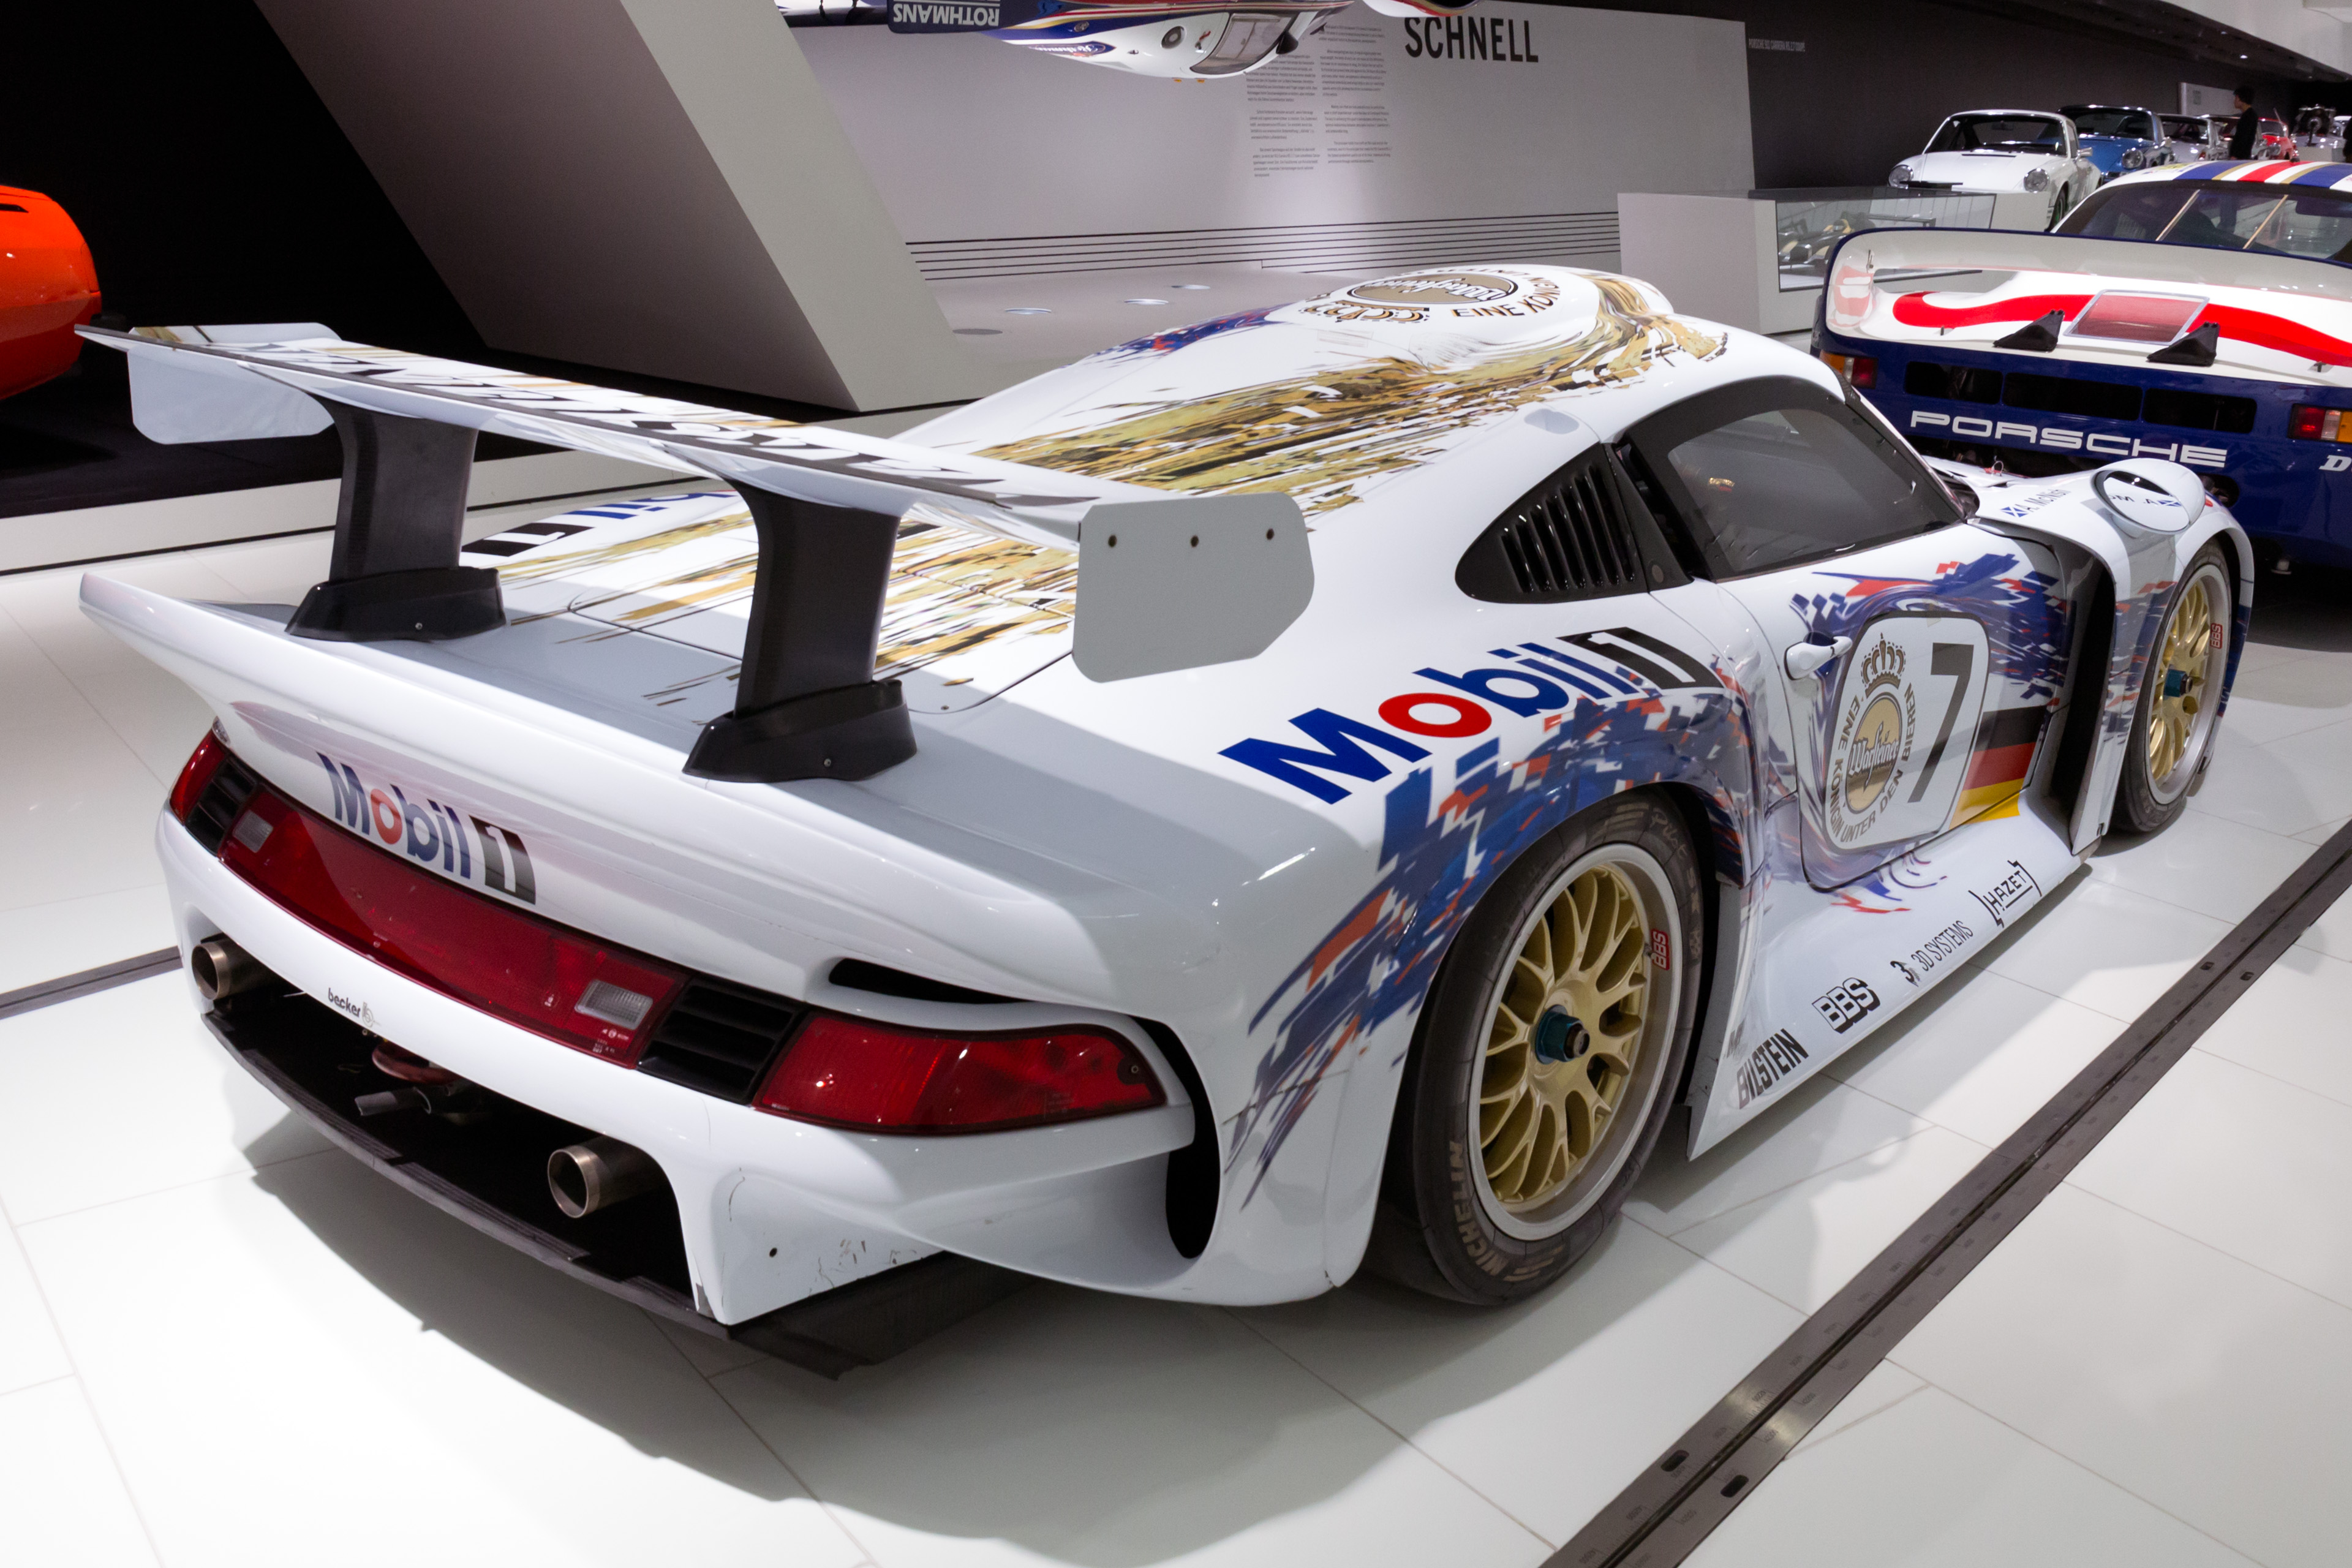 file porsche 911 gt1 96 rear right porsche. Black Bedroom Furniture Sets. Home Design Ideas